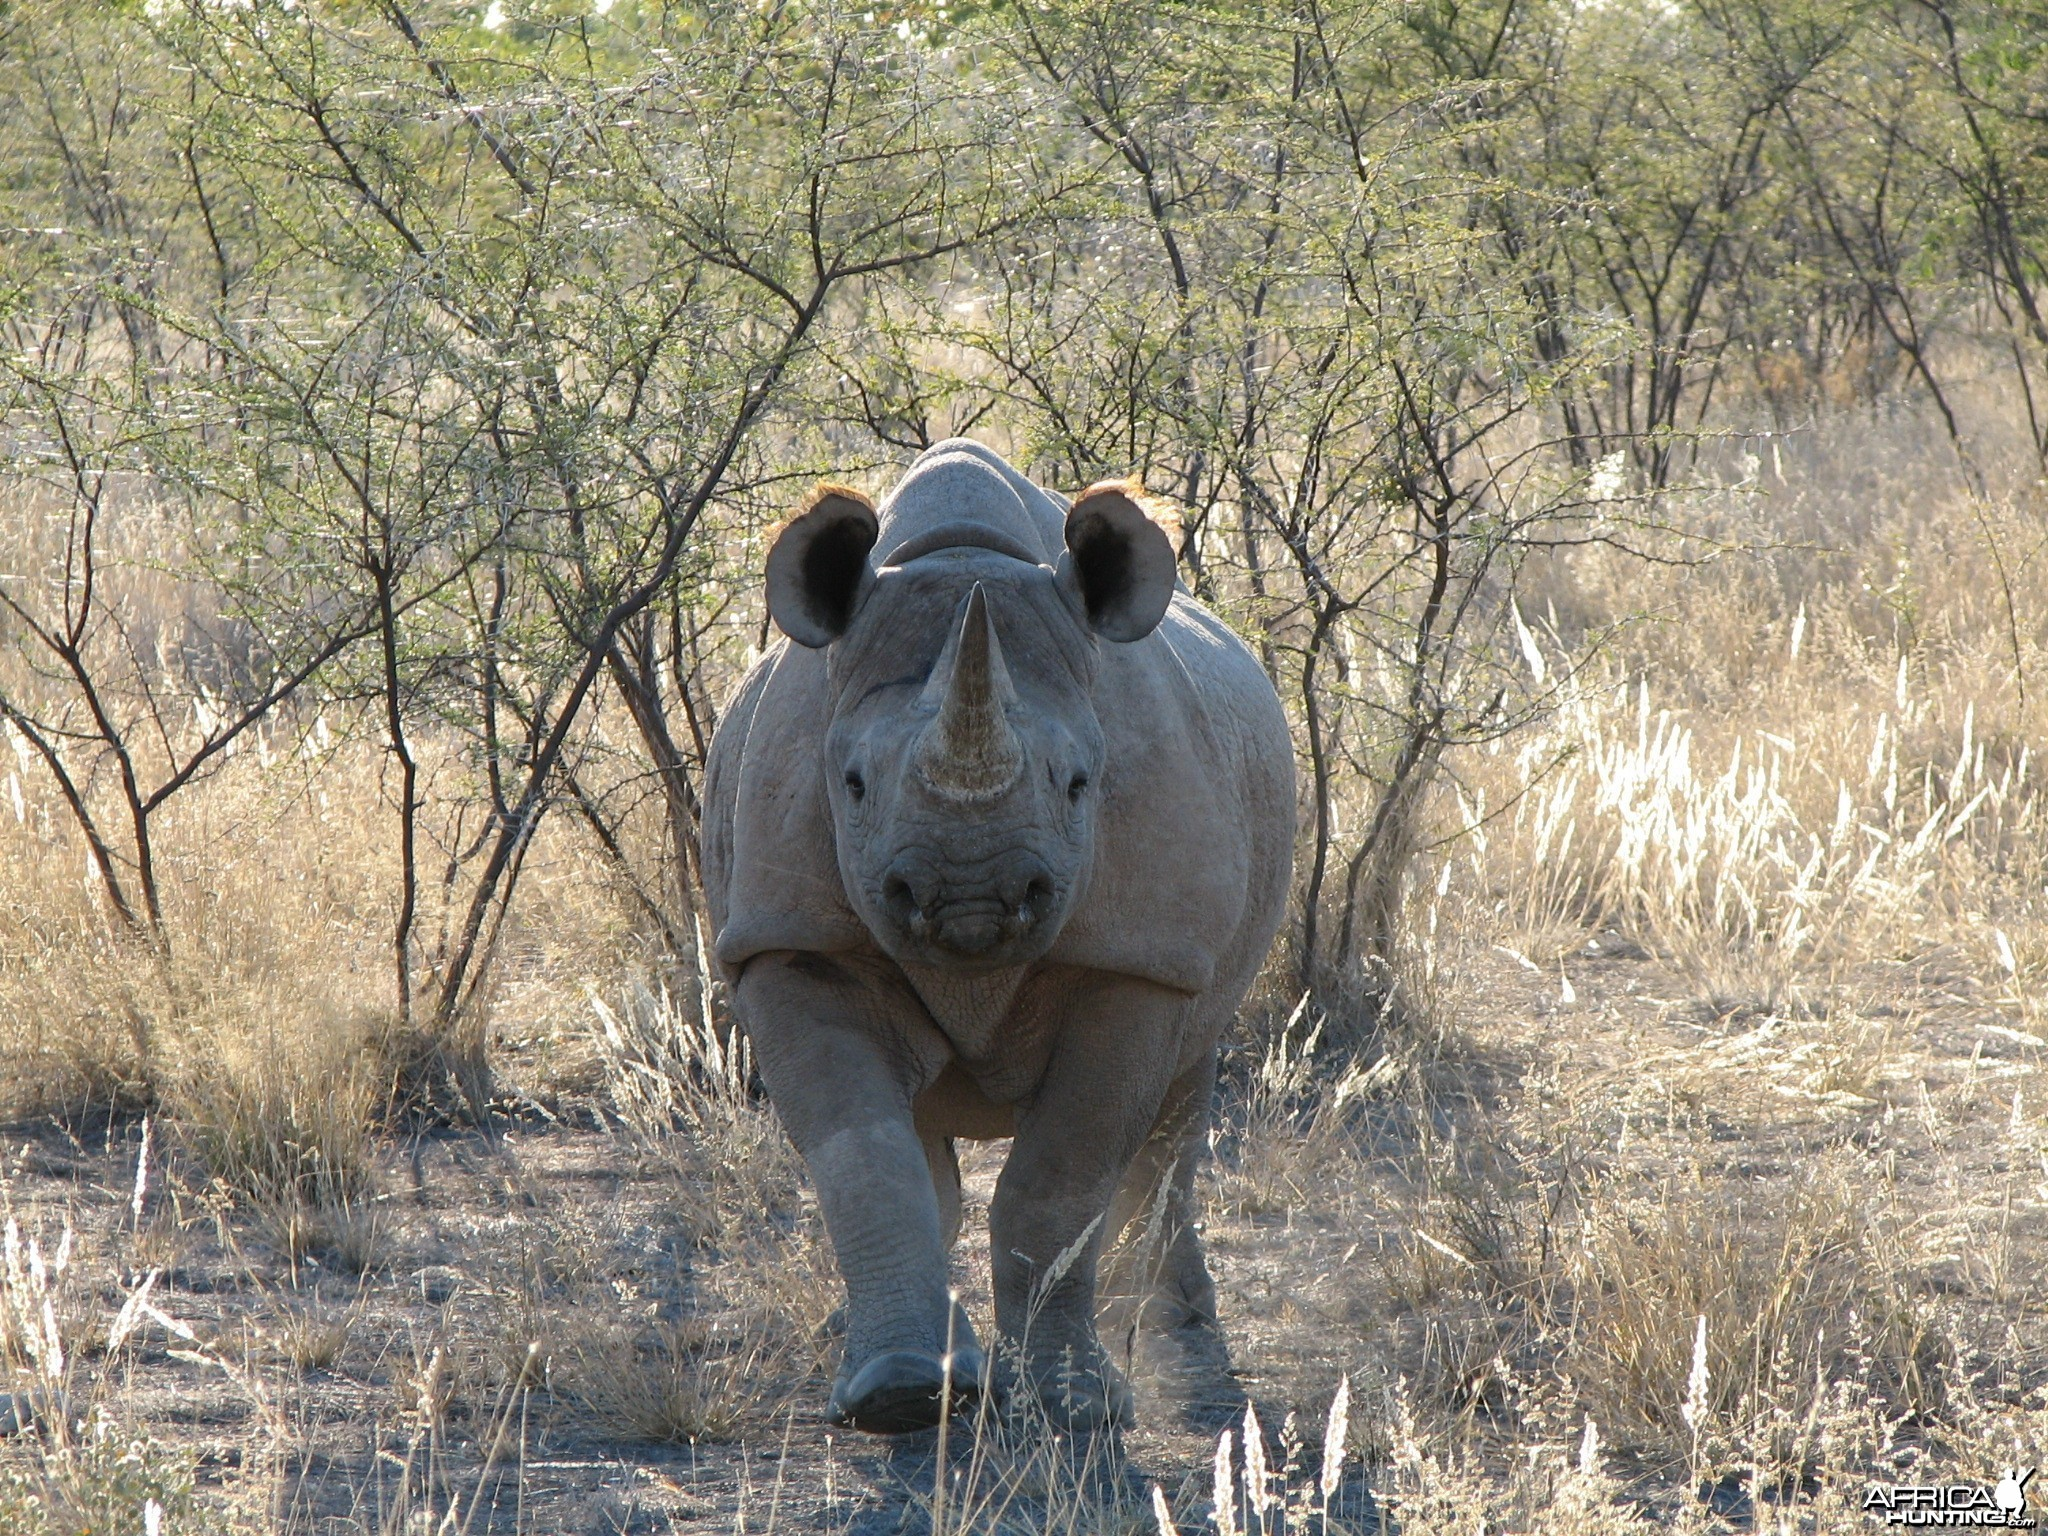 Black Rhino at Etosha National Park, Namibia